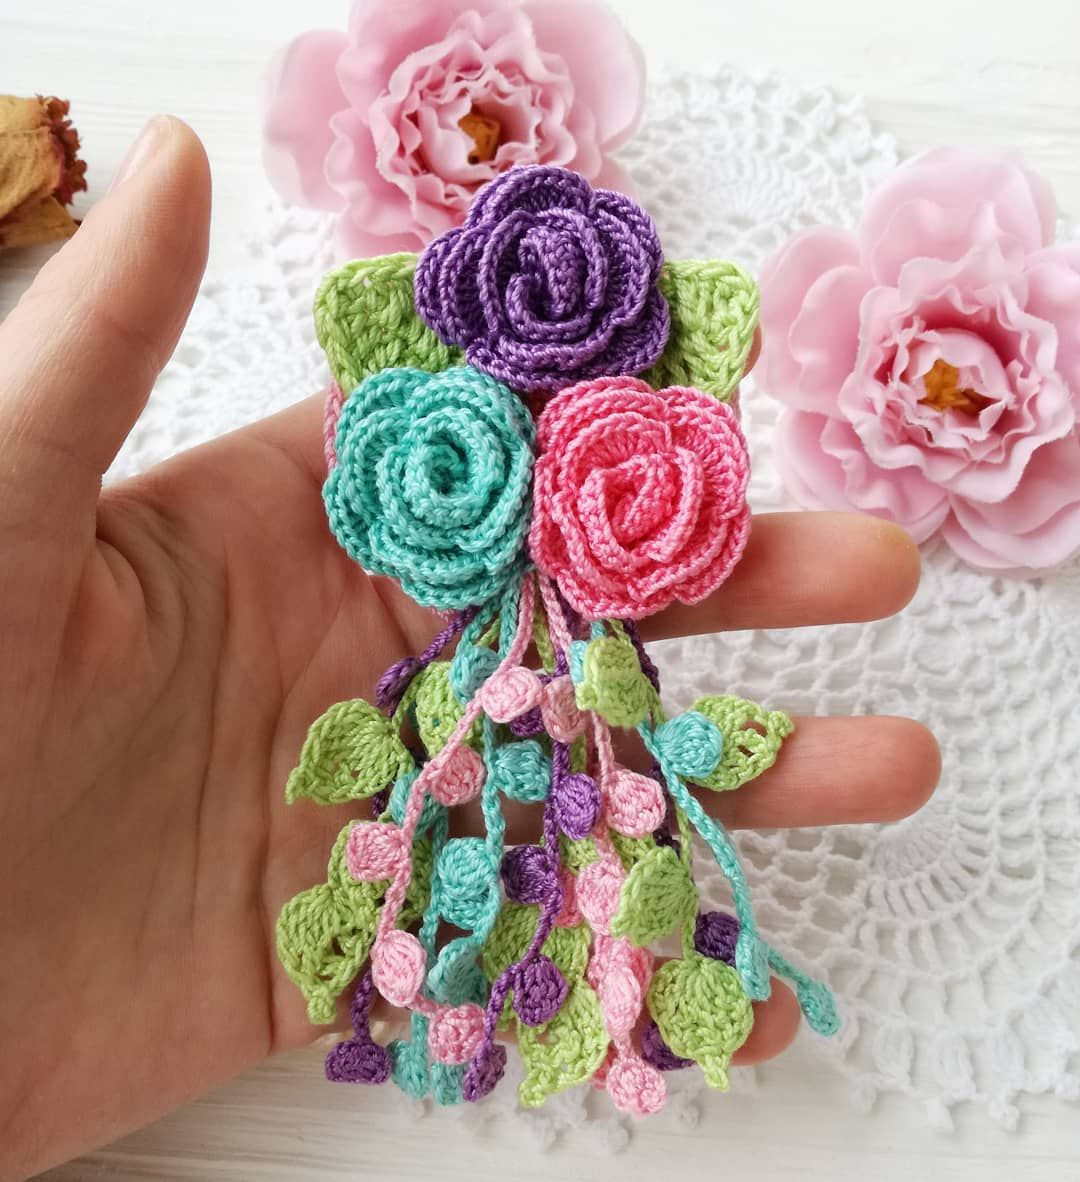 53 Crochet Flower Patterns And What To Do With Them Easy 2019 - Page 24 of  58 - Crochet Blog!